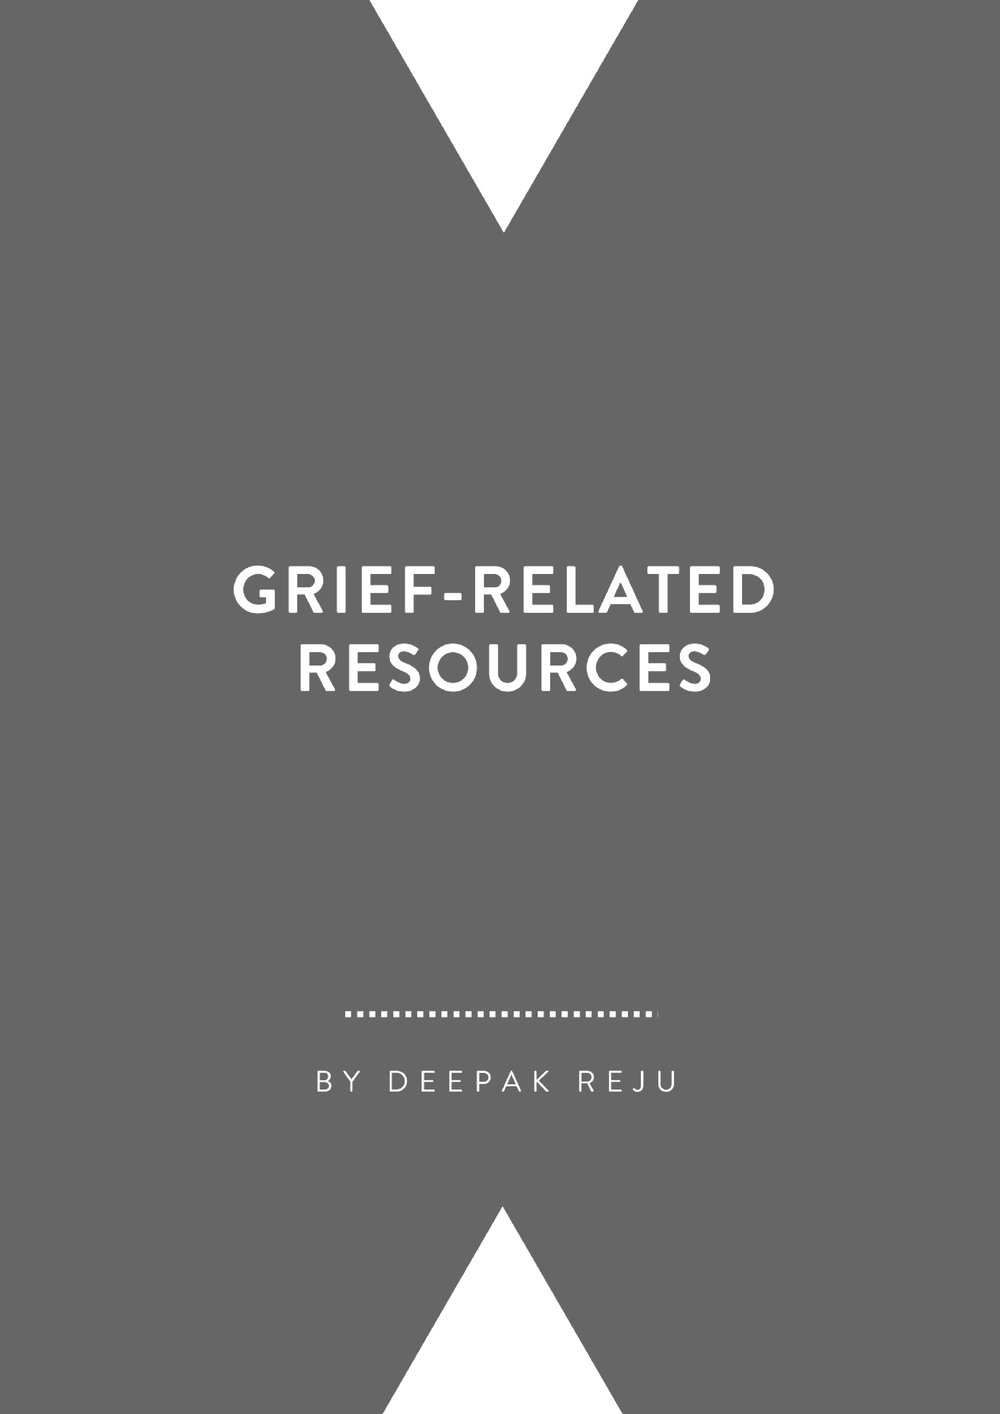 Grief-Related Resources   By Deepak Reju